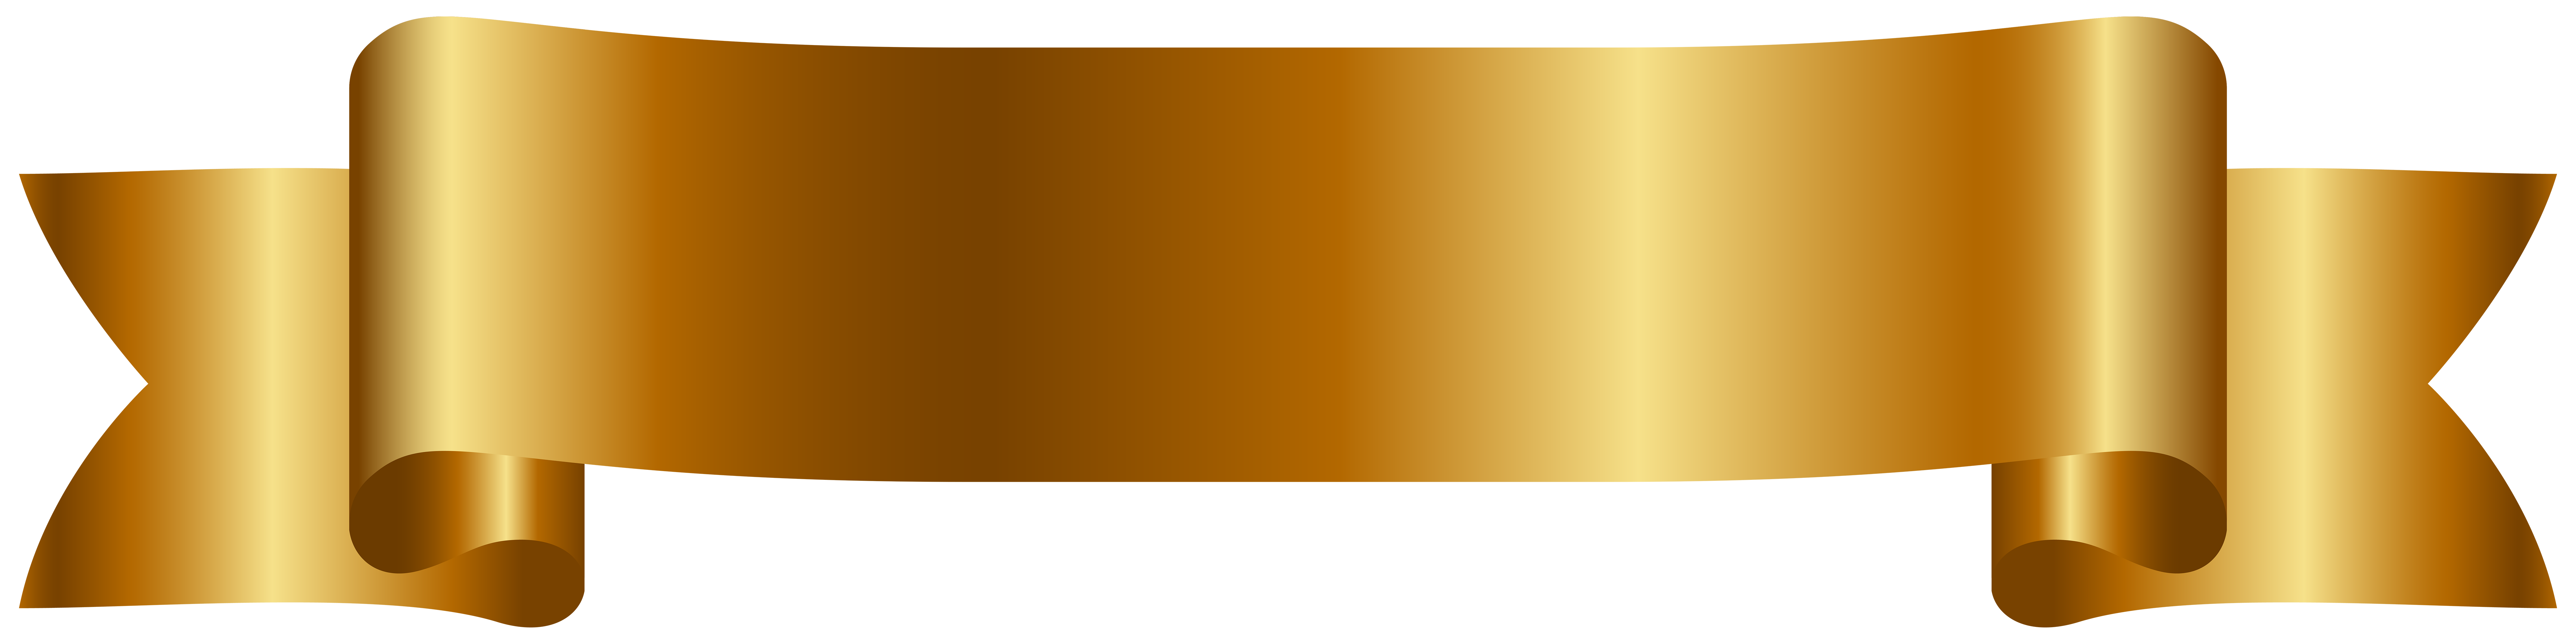 Gold banner ribbon png. Cyberuse golden cliparts free